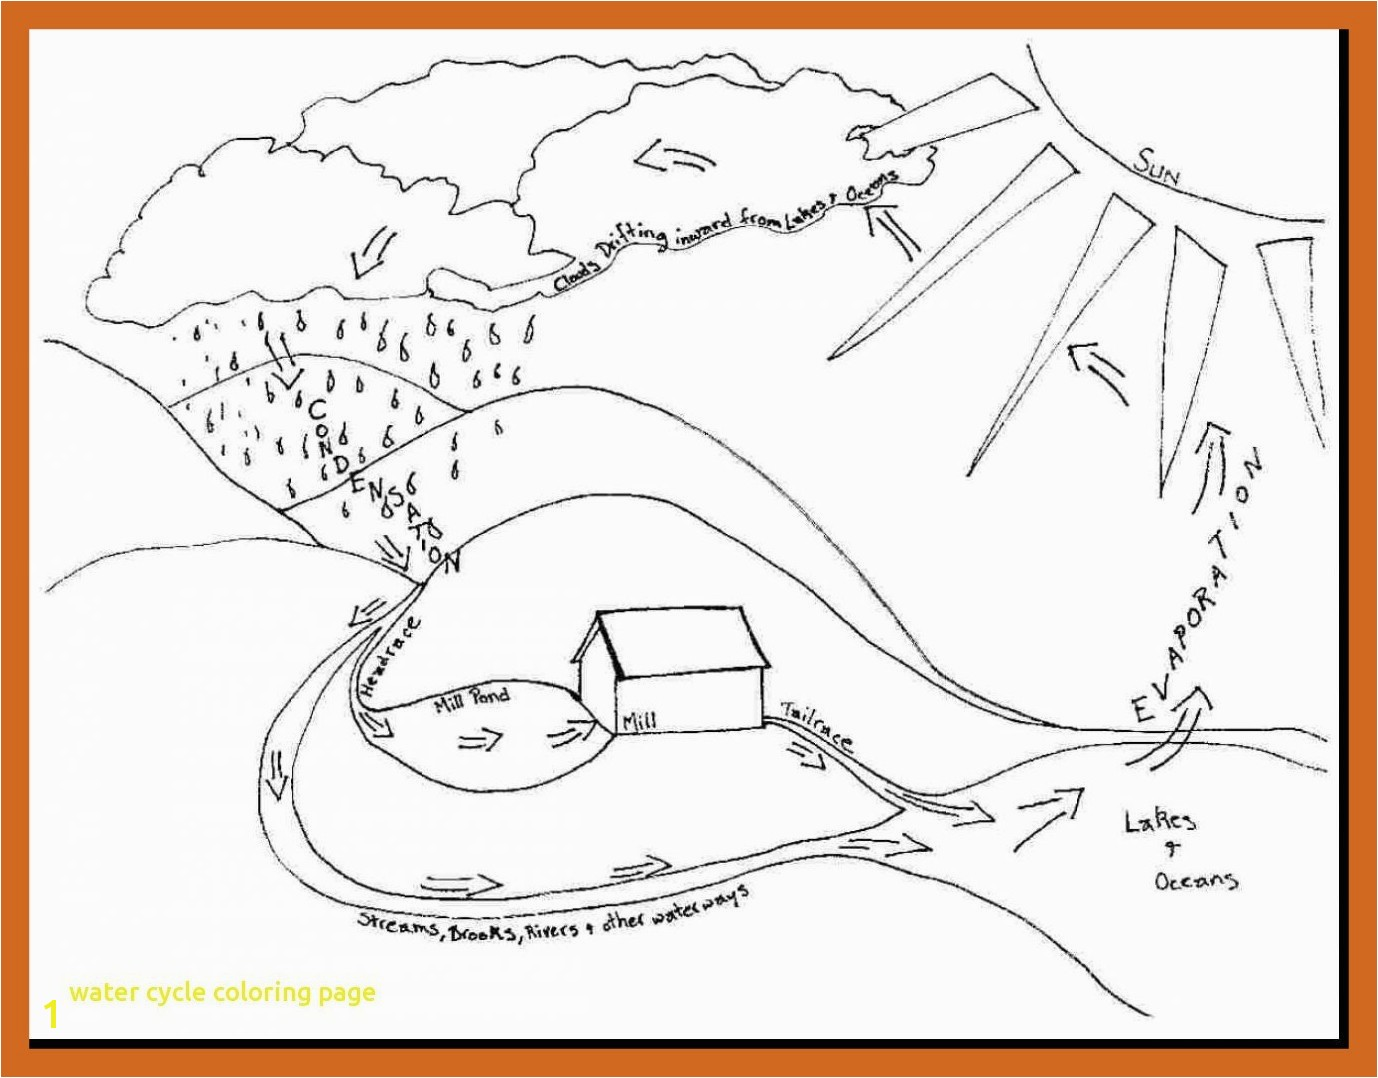 Water Cycle For Kids Coloring Page Water Cycle Coloring Sheet Best Amazing Simple Water Cycle